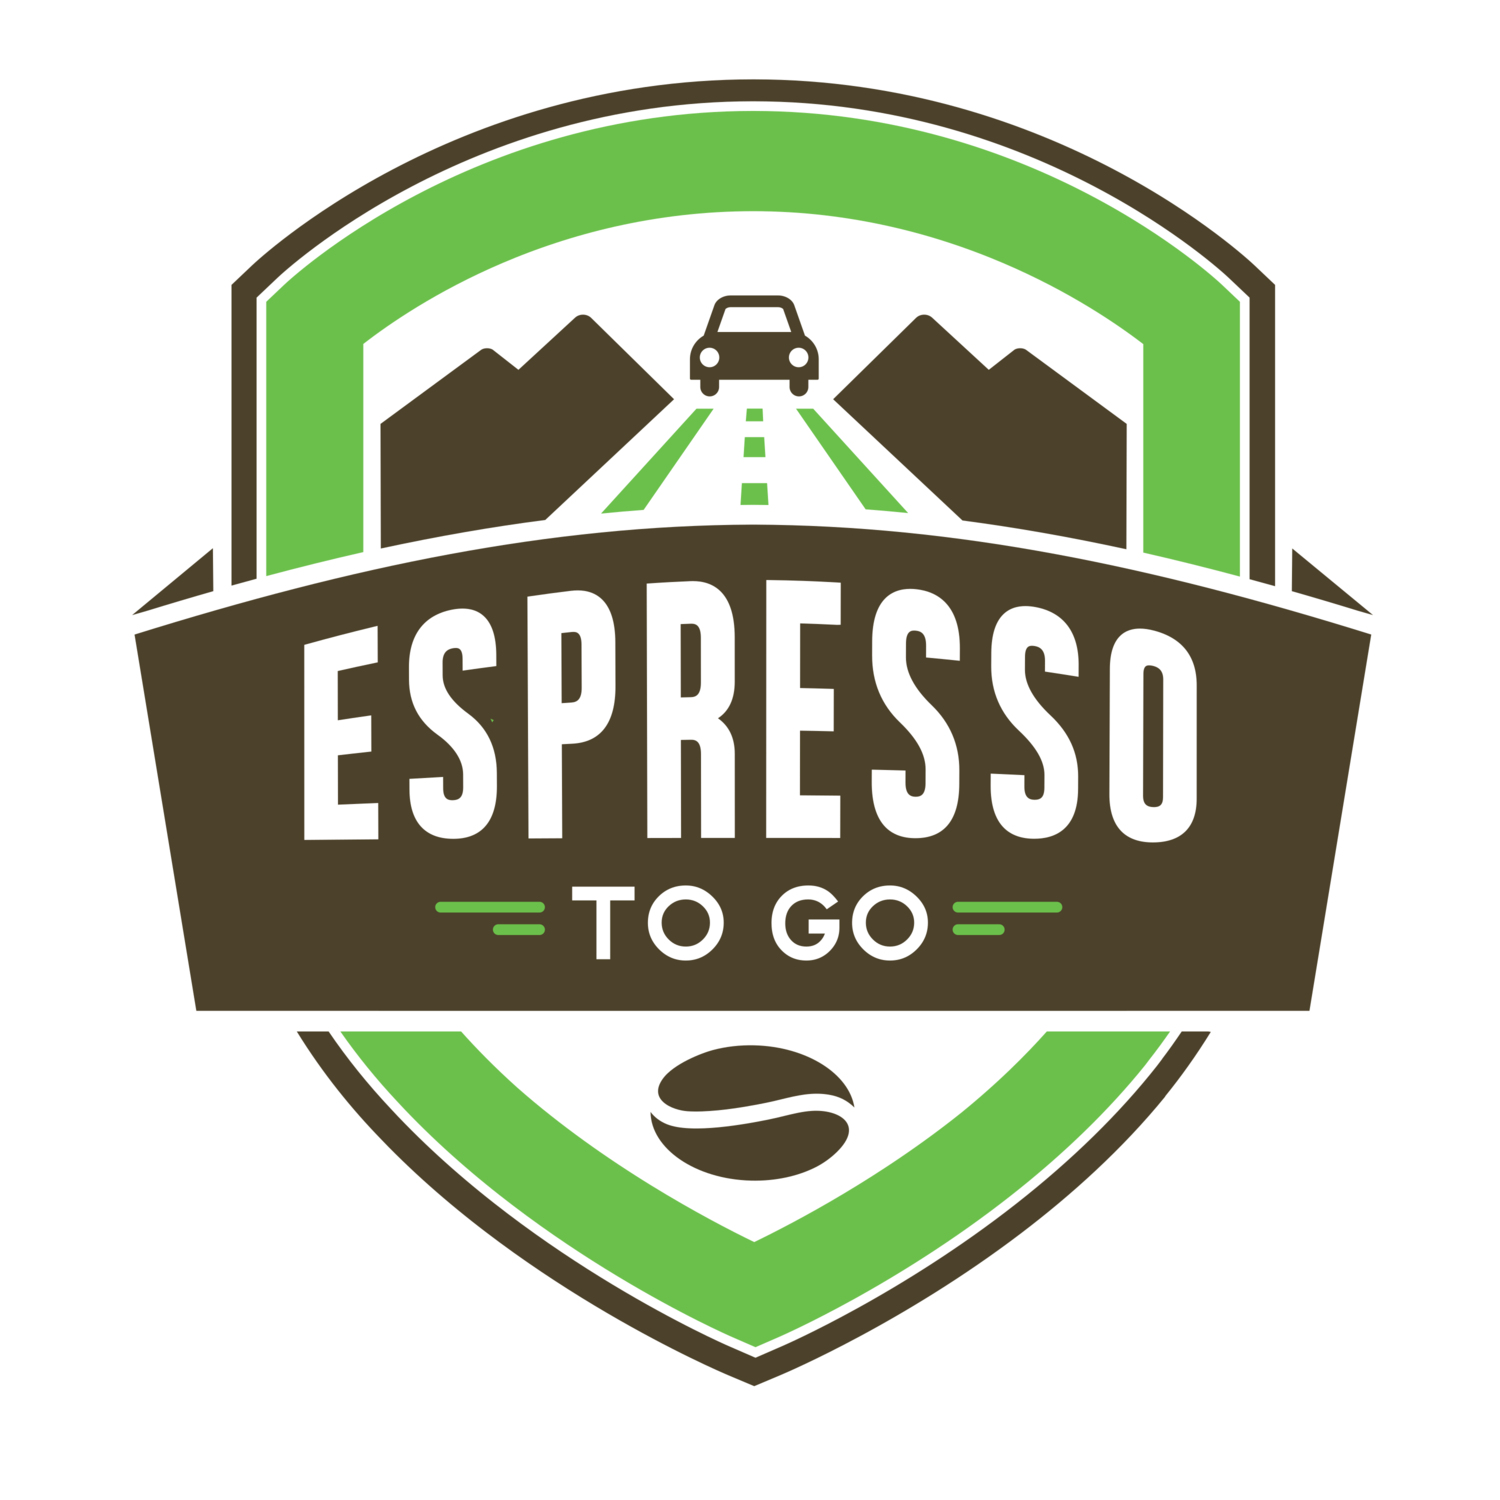 Bozeman Drive-Thru Coffee Shop | Espresso To Go